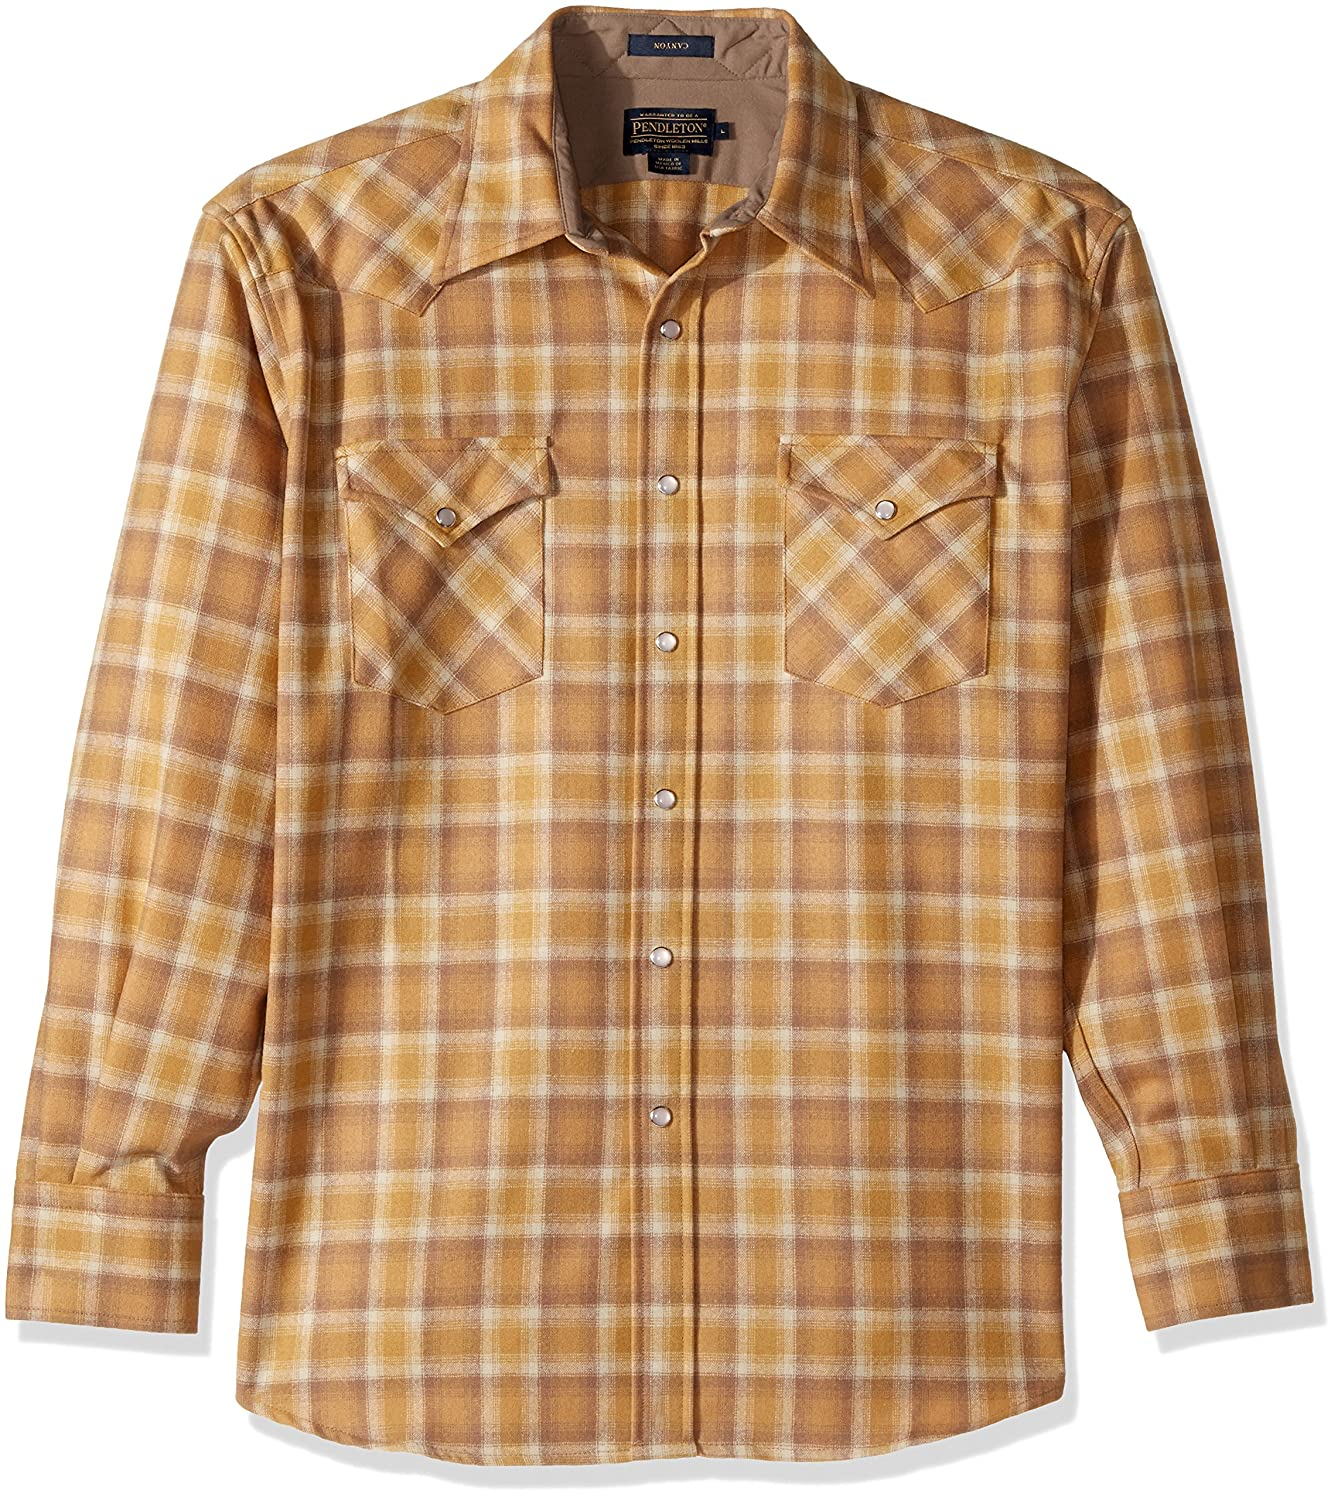 Pendleton メンズ長袖キャニオンシャツ B06XPXHY7G 3L|Watson Gold Ombre Watson Gold Ombre 3L